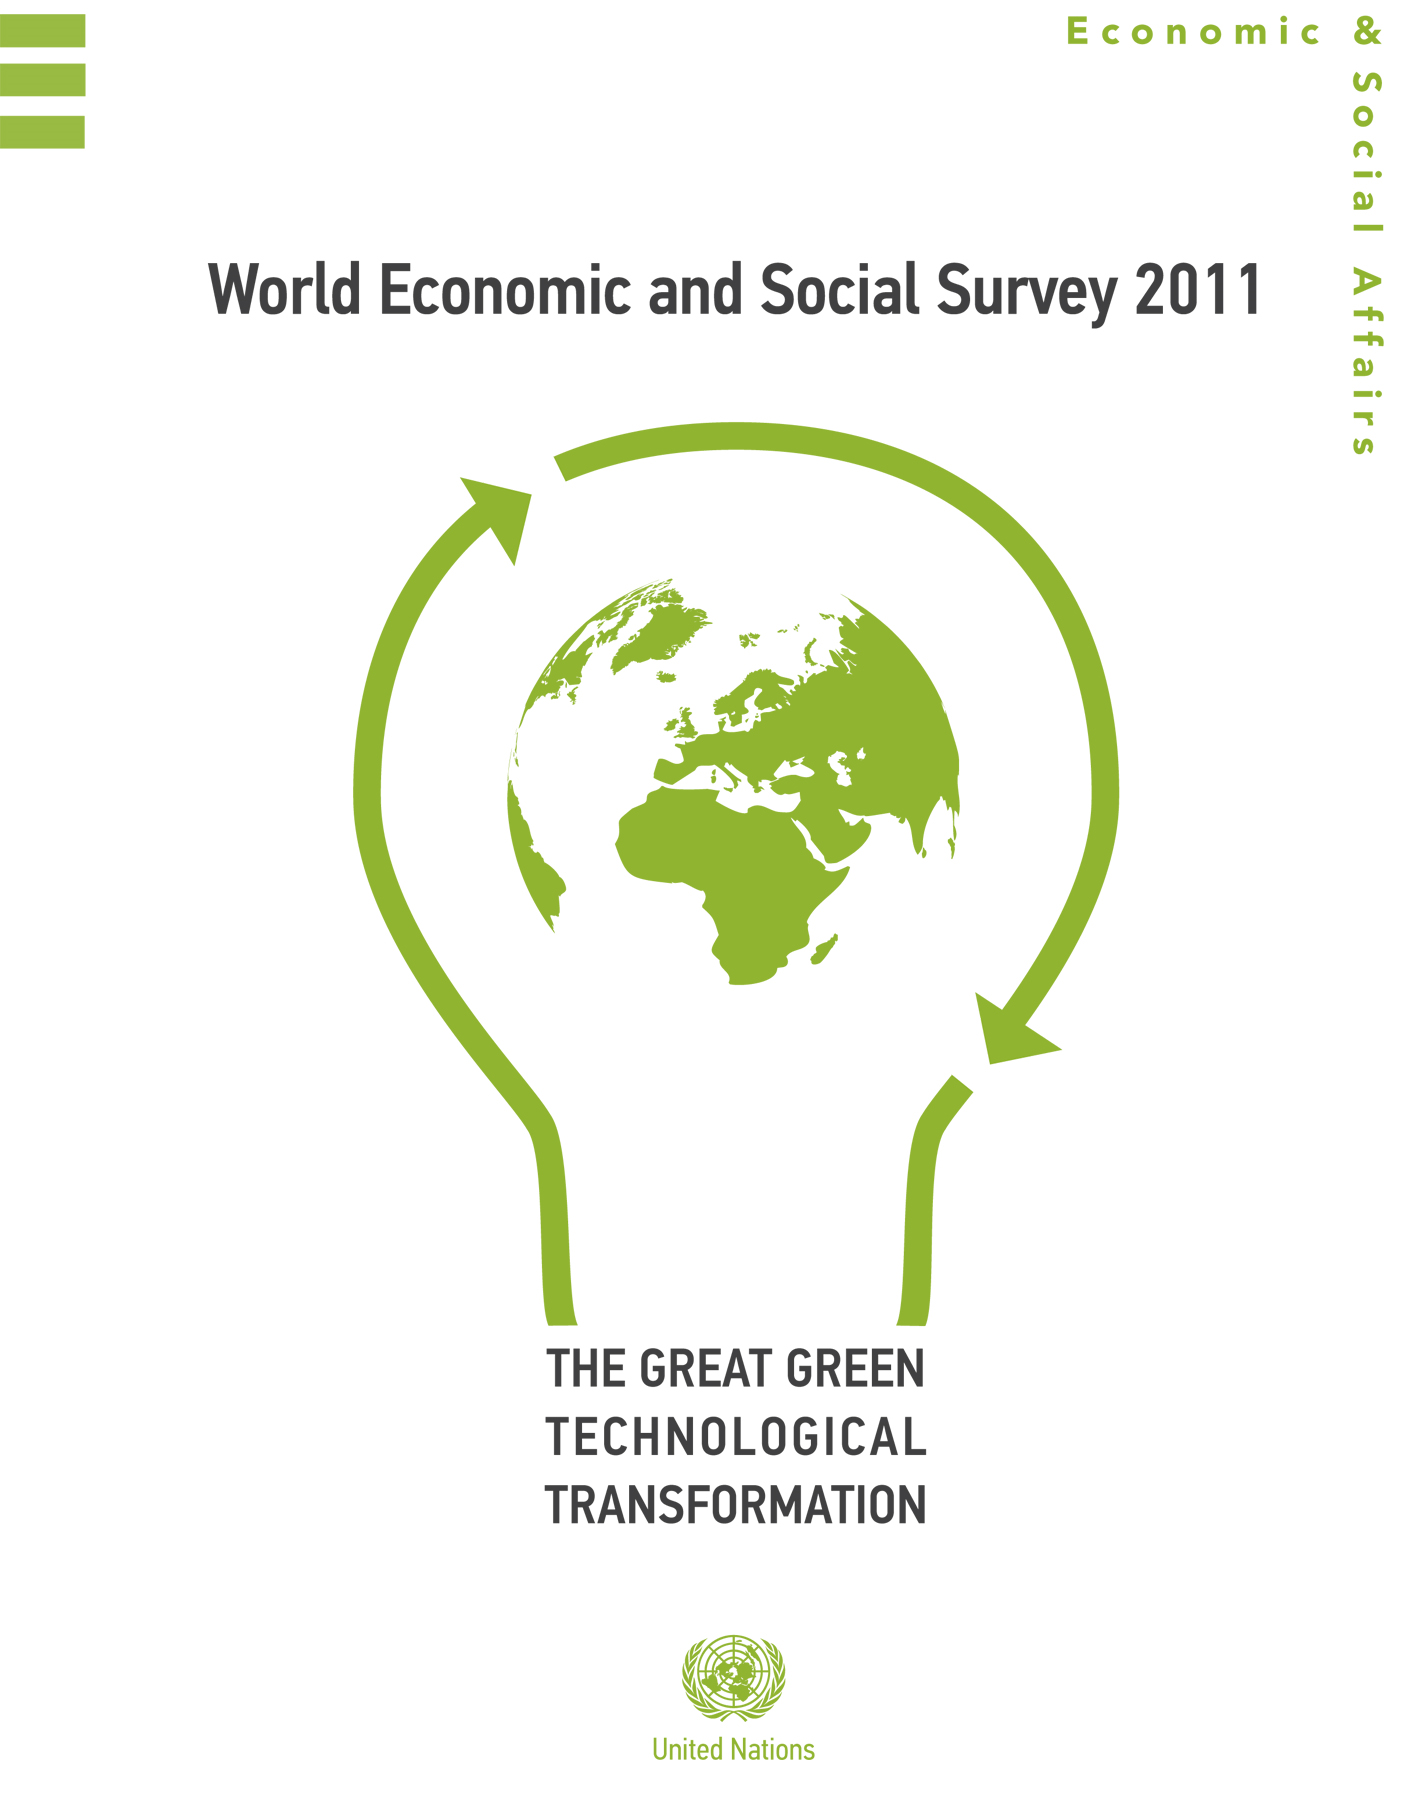 World Economic and Social Survey 2011